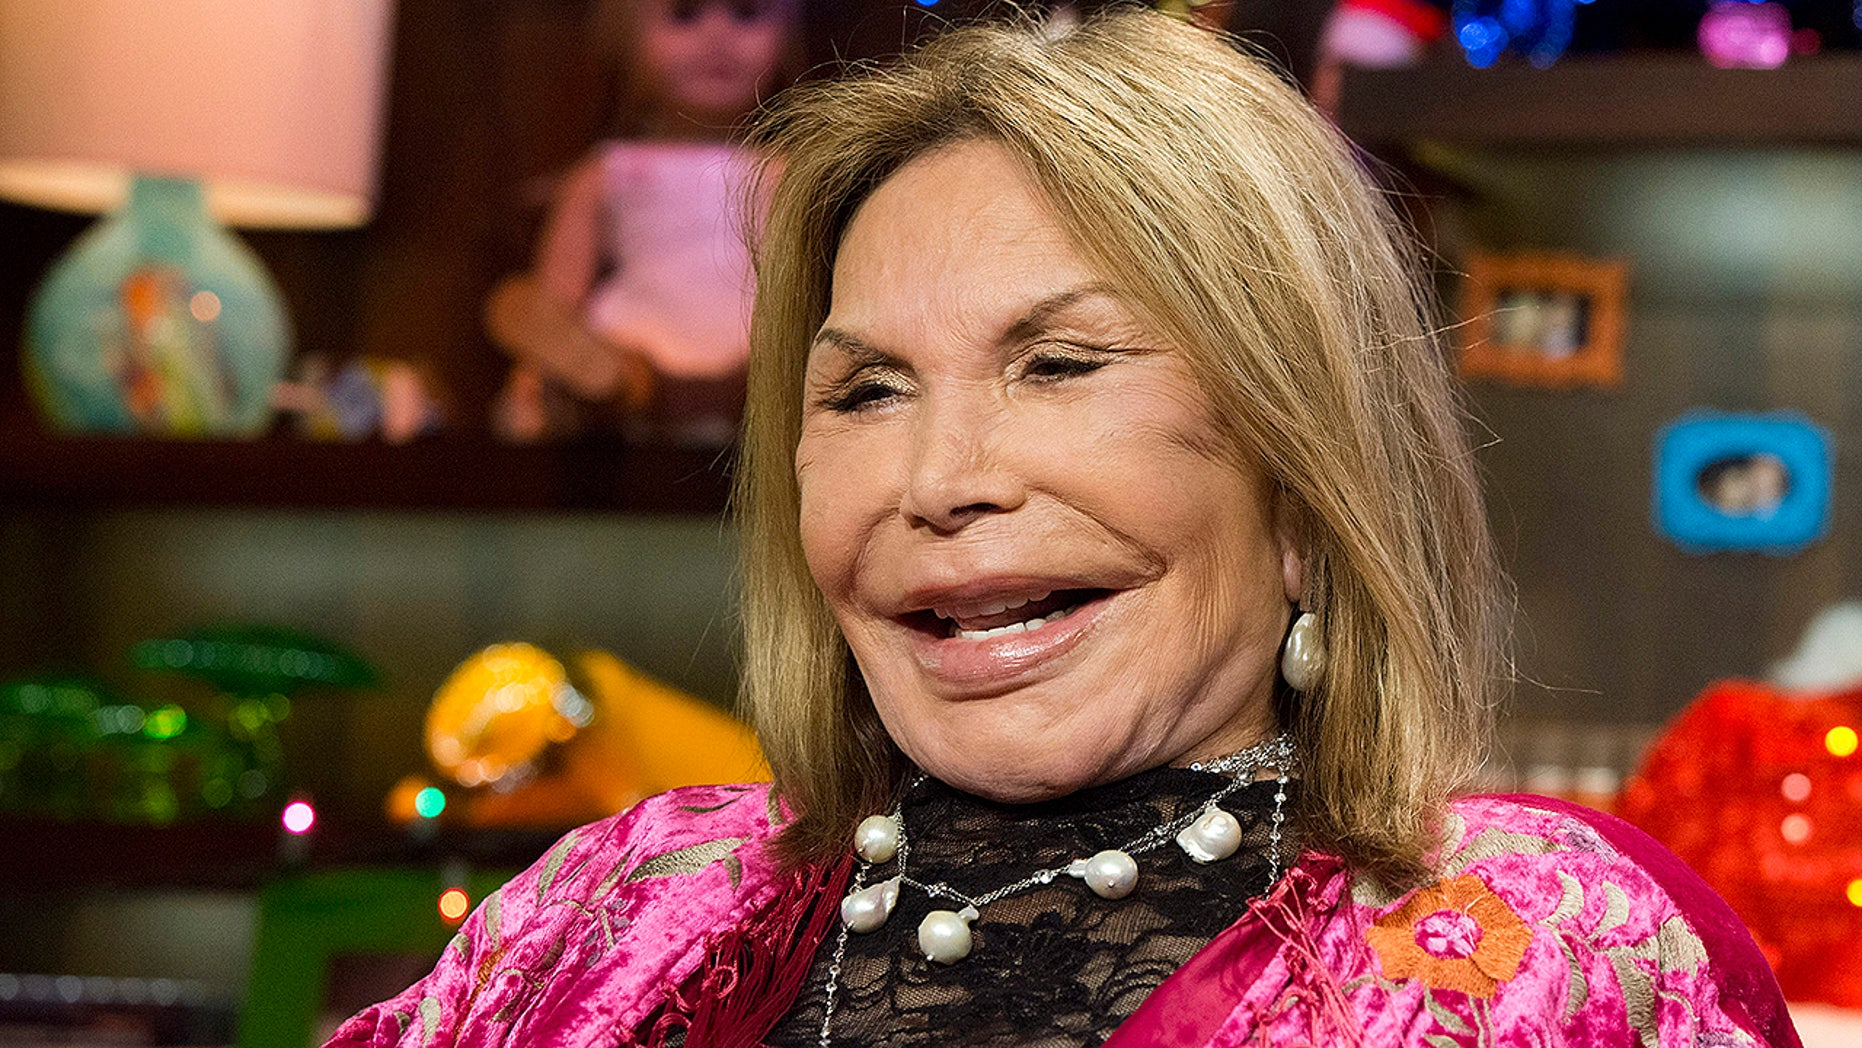 """Elsa Patton, a """"Real Housewives of Miami"""" fixture, passed away over Mother's Day weekend. She was 84."""